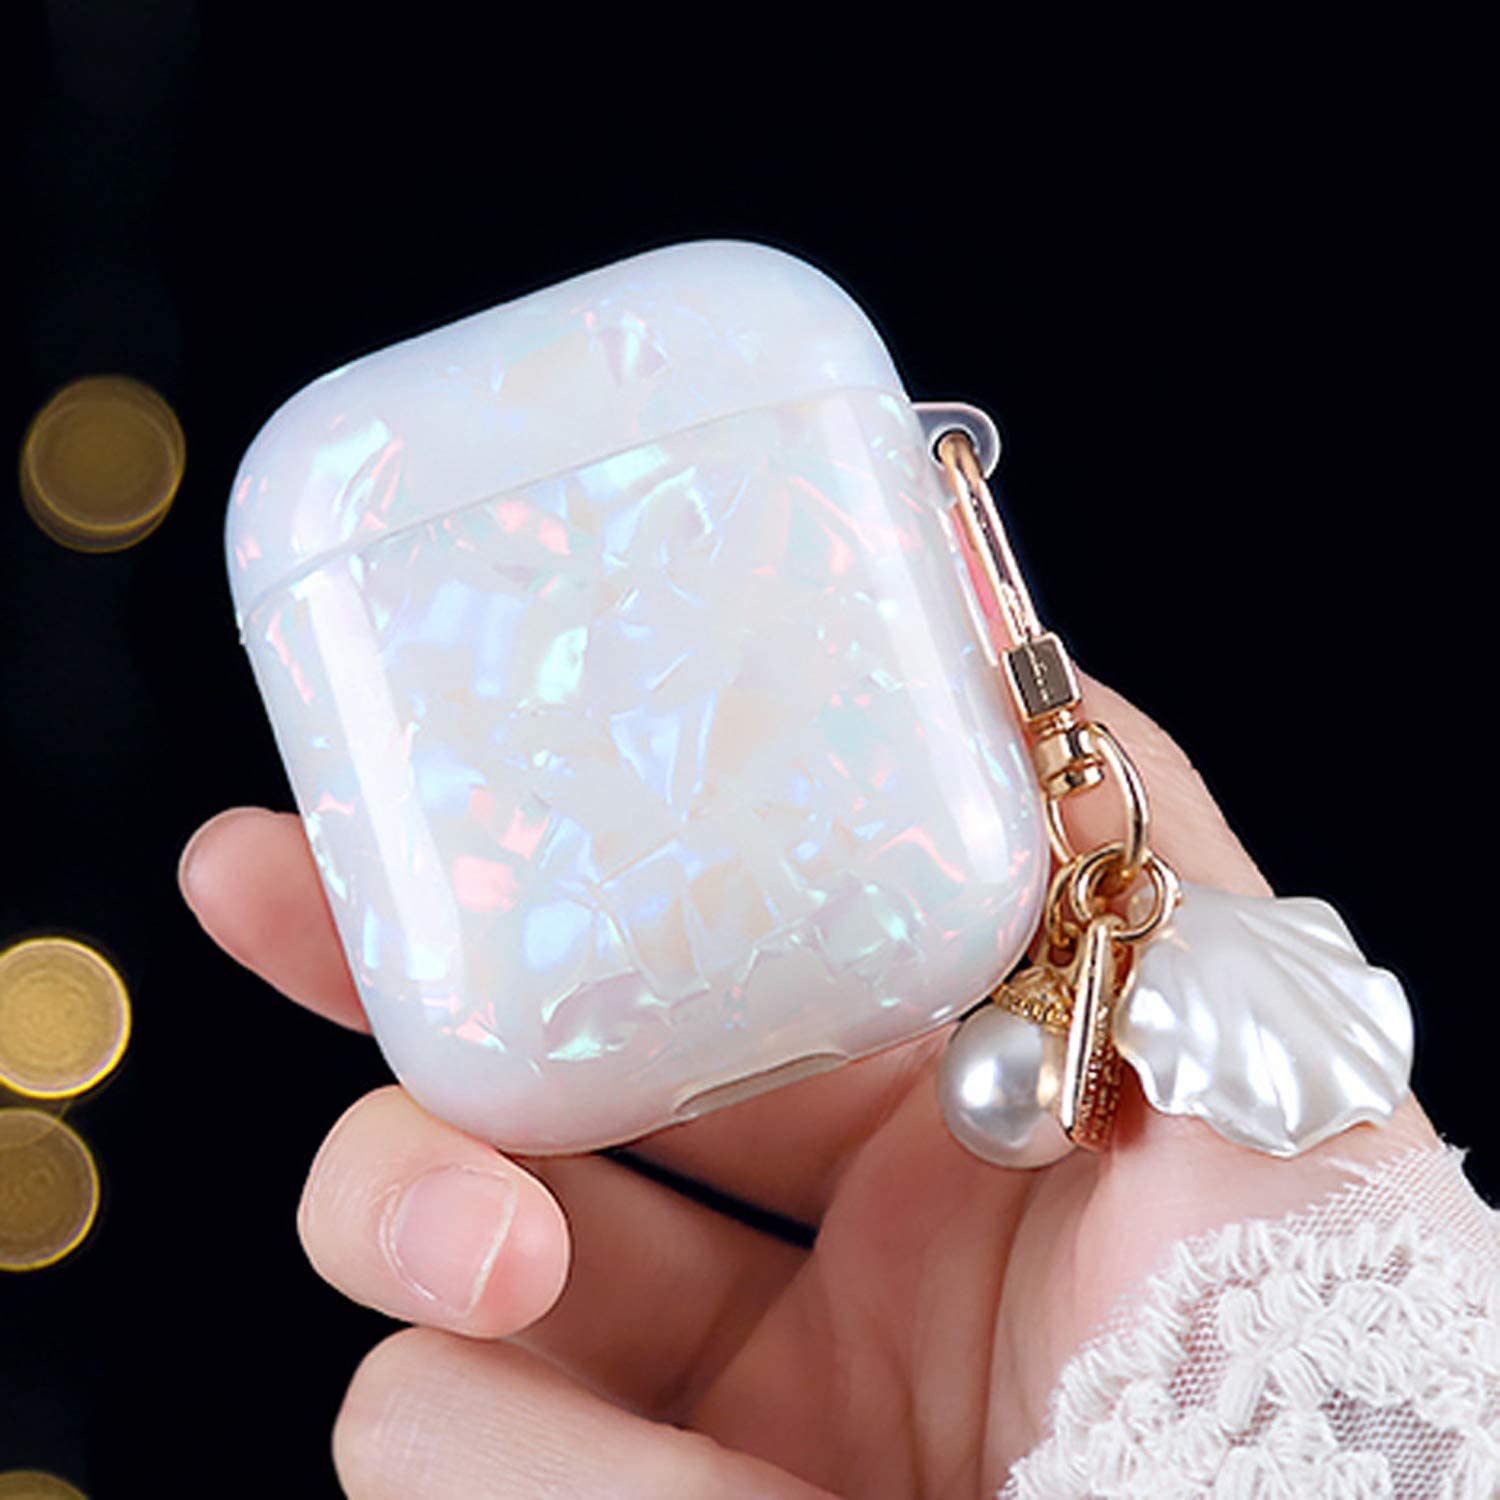 Airpods Case with Pearl Shell Keychain, Glitter TPU Soft Case Cover Shockproof Protective Cute Airpod Case Cover Skins Compatible with Apple Airpods 2/1 Charging Case for Kids Girls Teens Women Boys